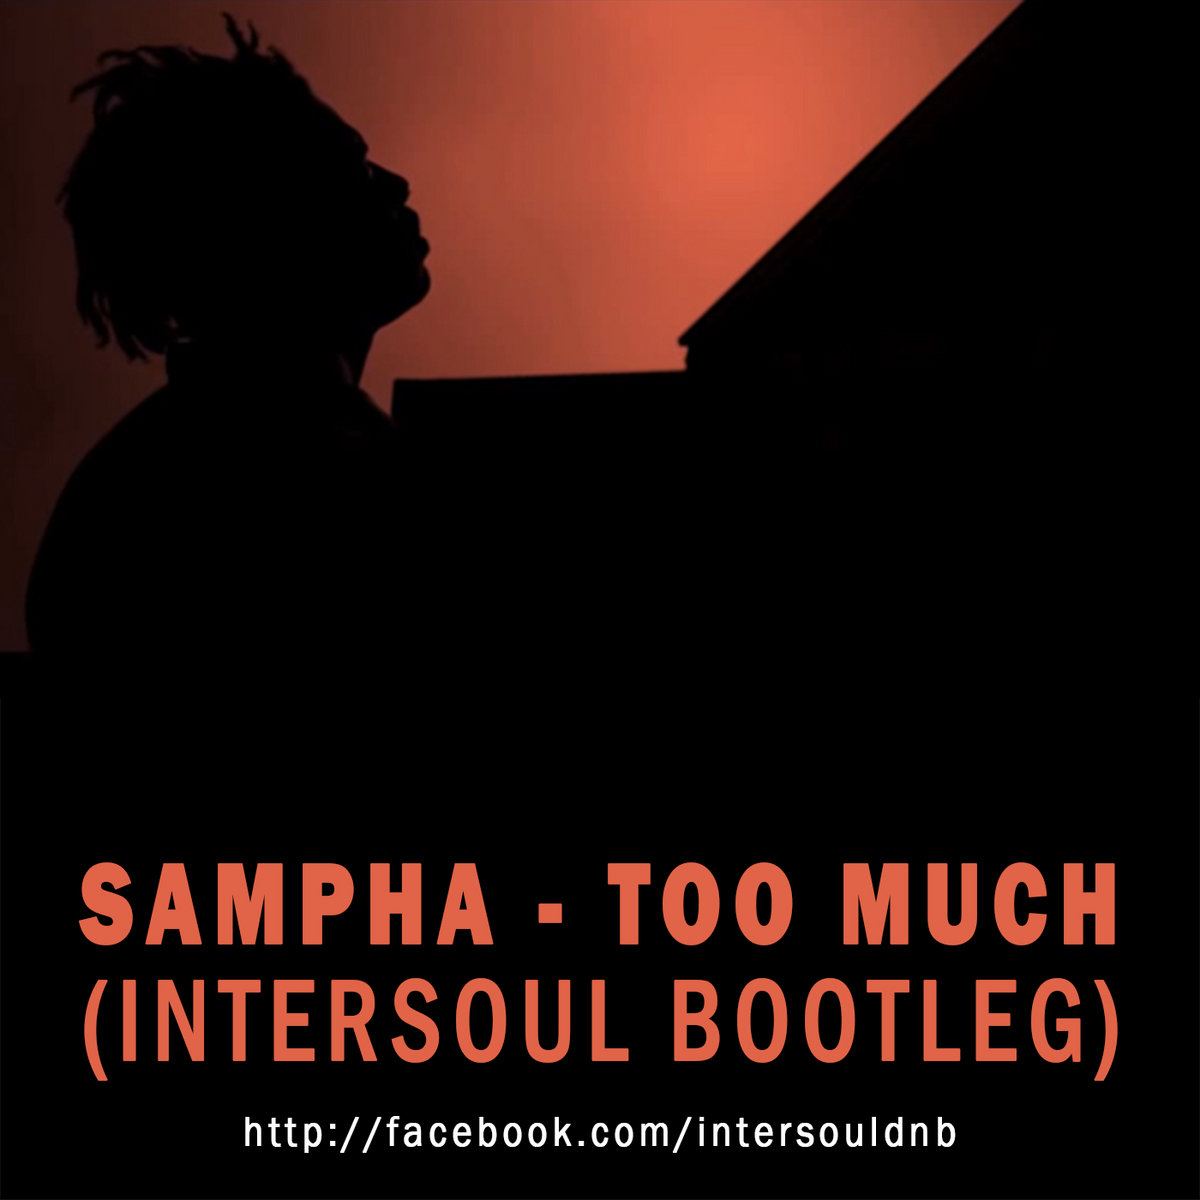 Sampha - Too Much (Intersoul Bootleg) - Free Download